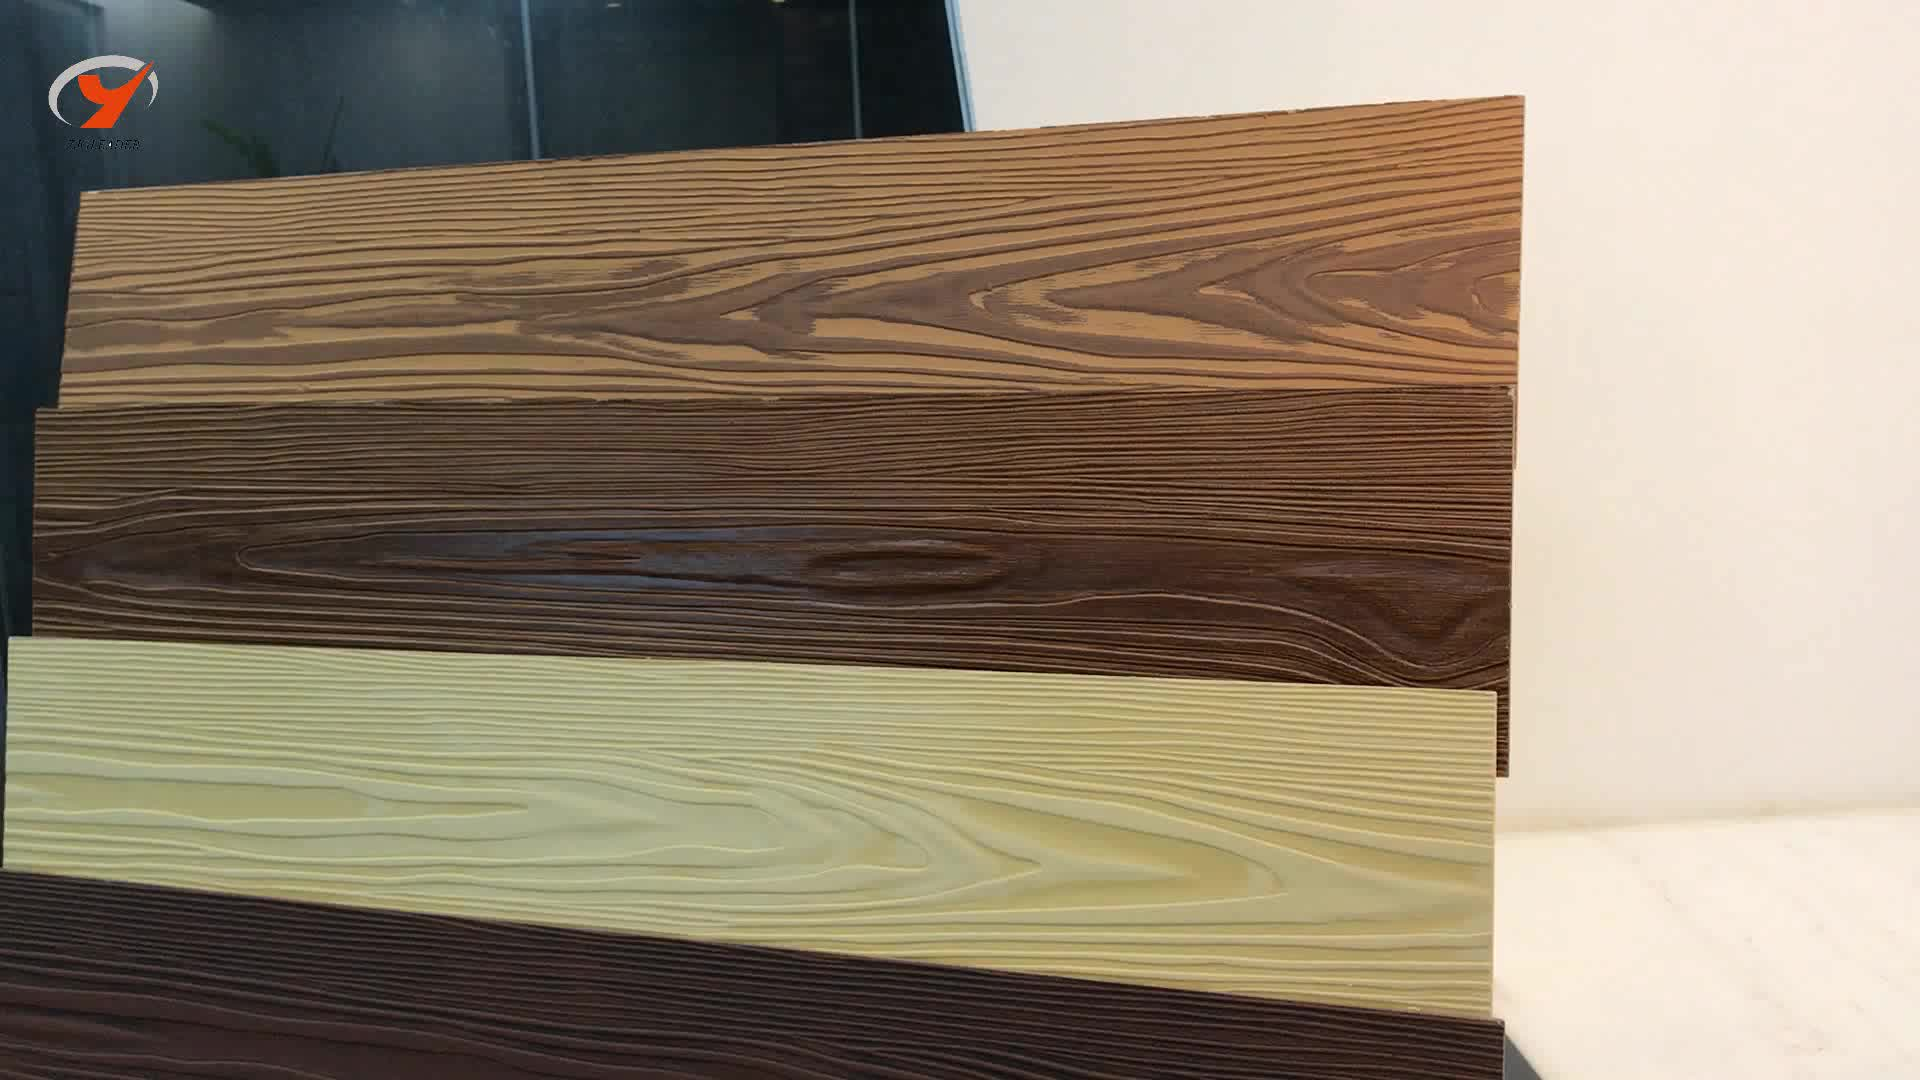 Wood grain fiber cement siding panel exterior wall for Wood grain siding panels